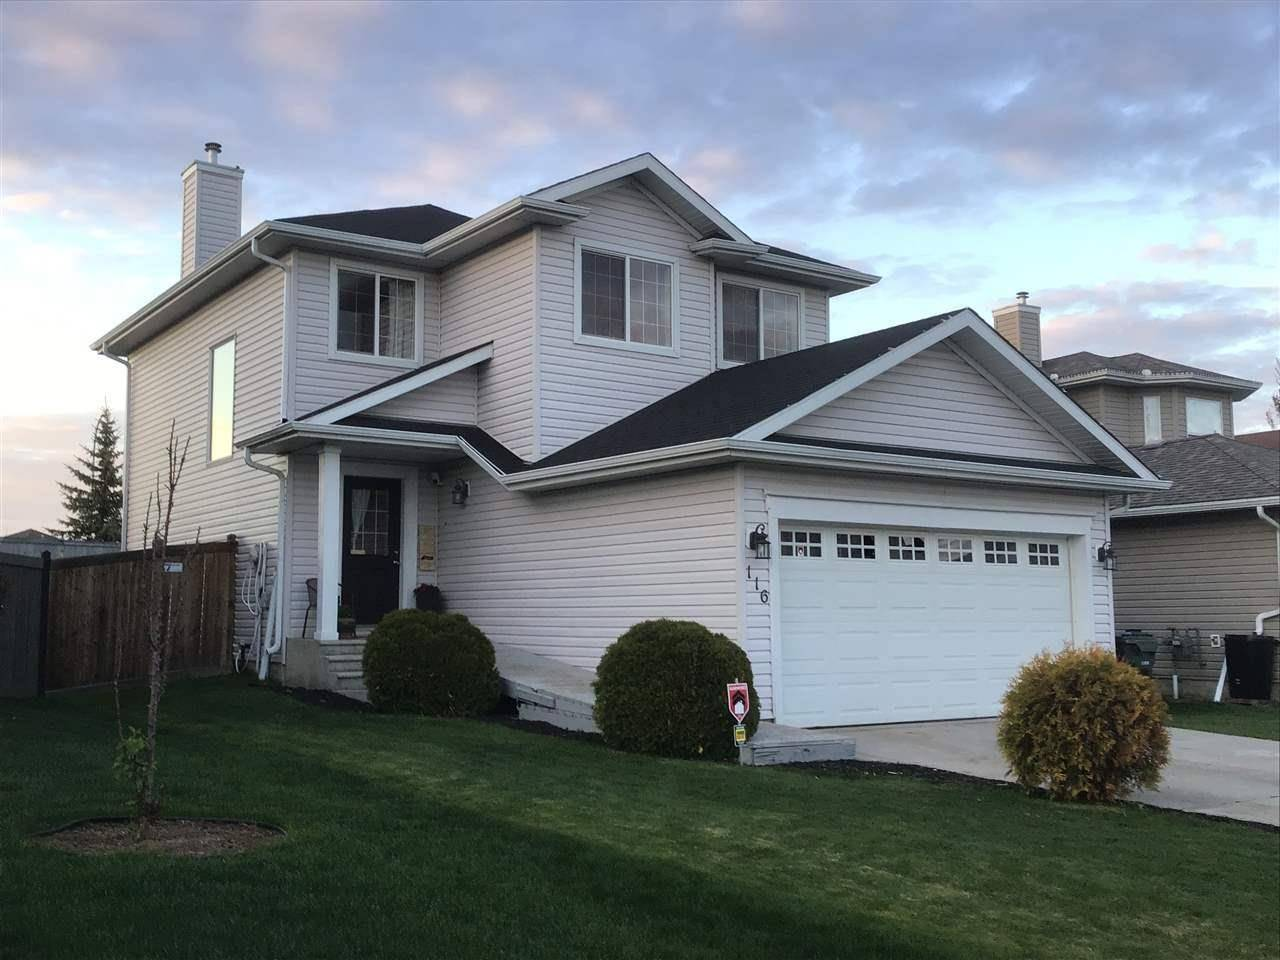 House for sale at 116 Greystone Cres Spruce Grove Alberta - MLS: E4191875